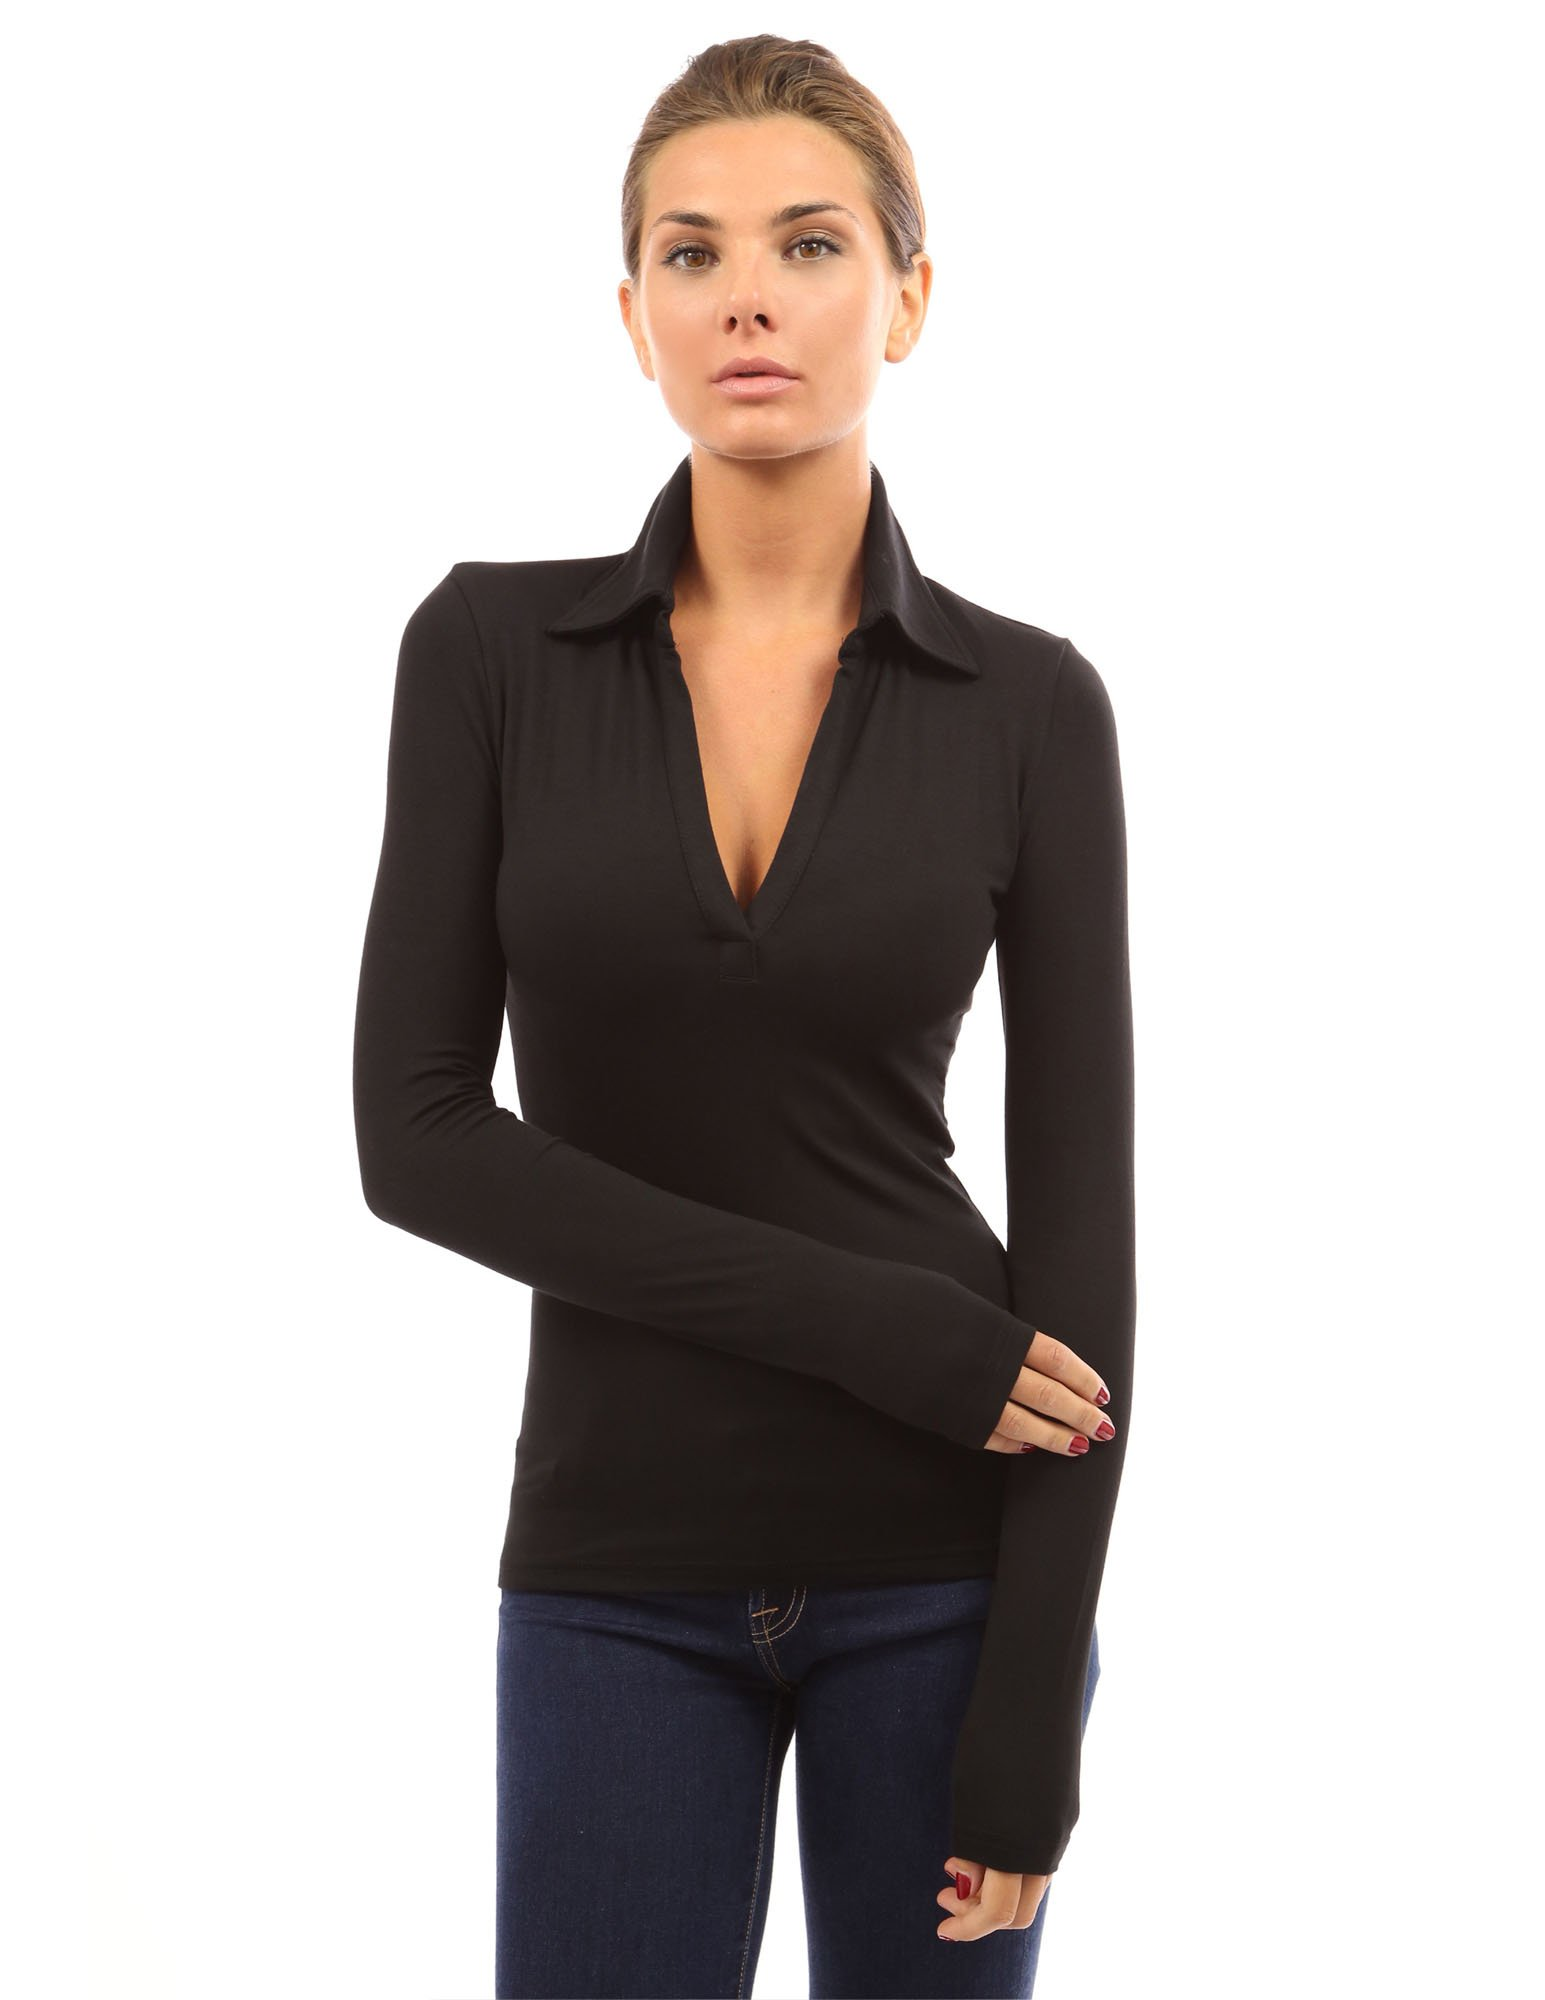 PattyBoutik Women's V Neck Long Sleeve Polo Shirt product image